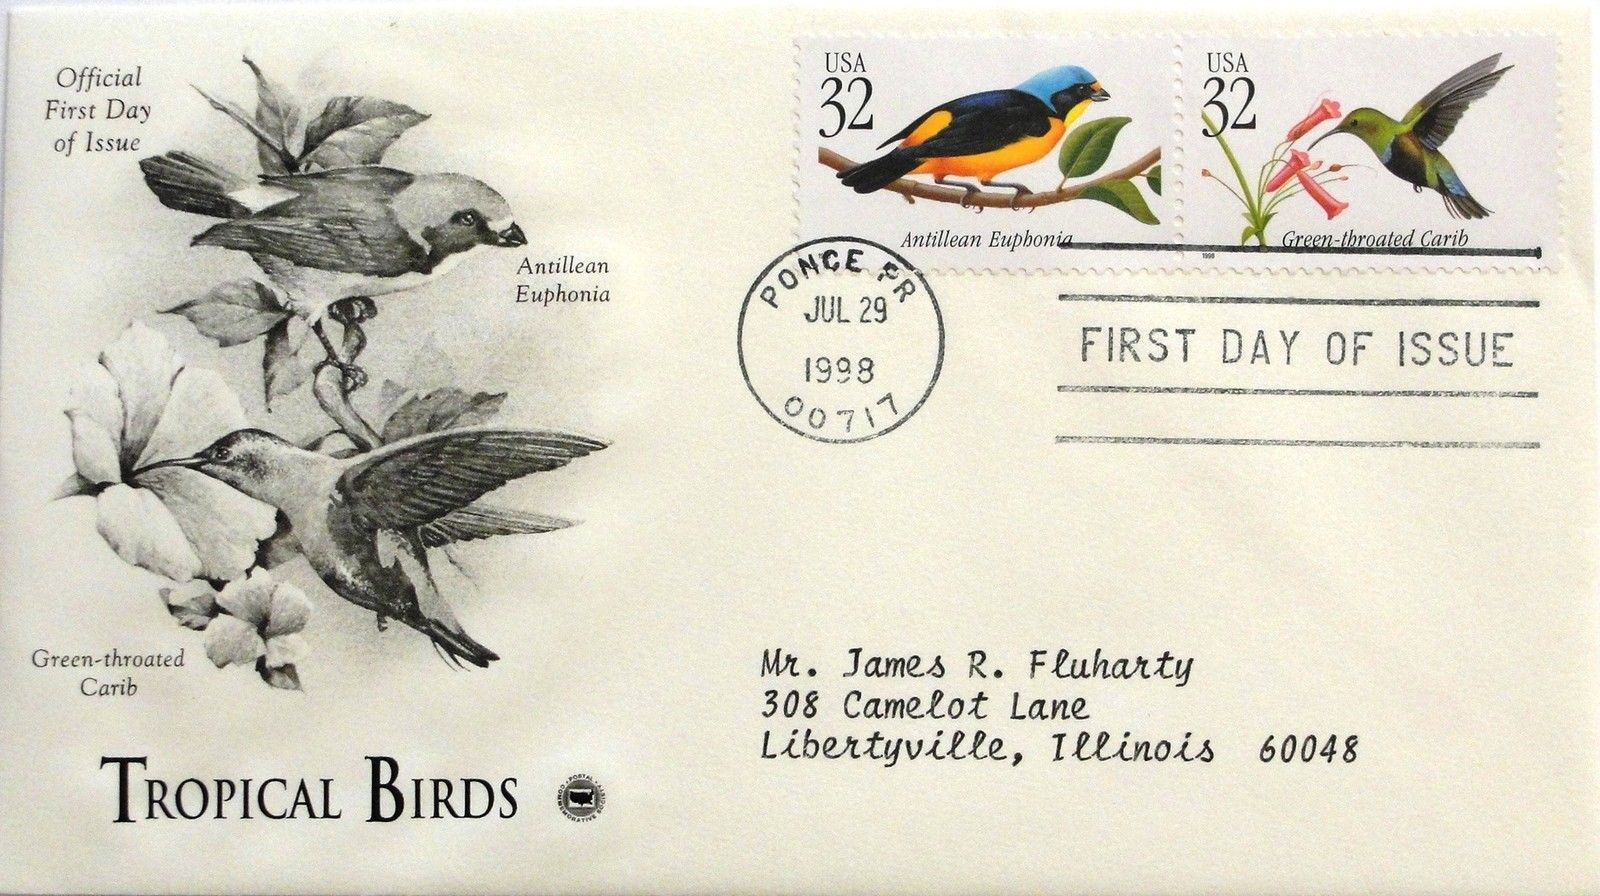 July 29, 1998 First Day of Issue, PC Society Covers, Birds-Carib/Euphonia #28